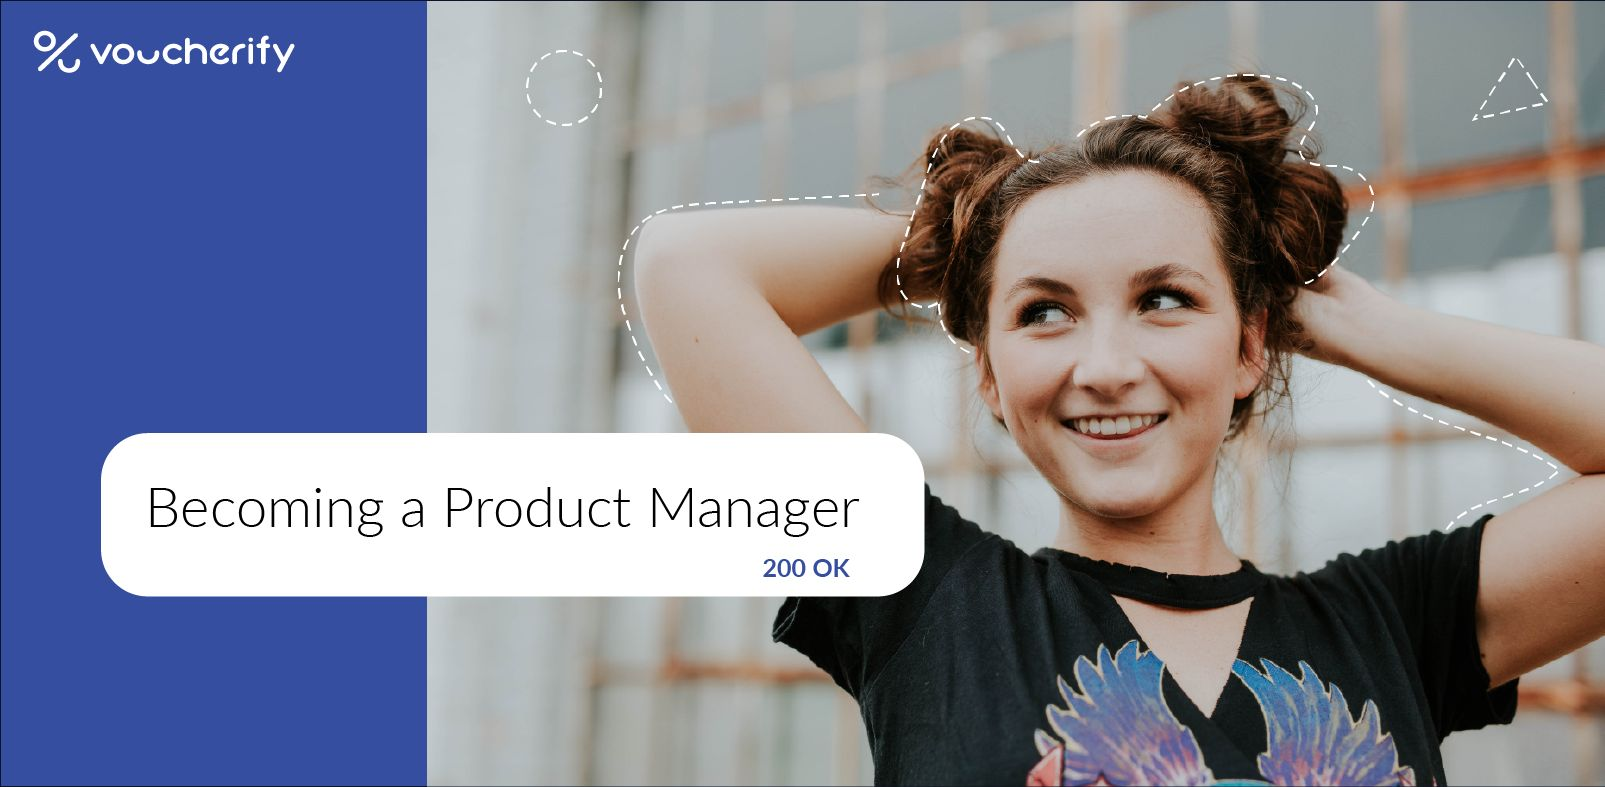 How to Become a Product Manager? My story of moving from Digital Marketing to Product Management.